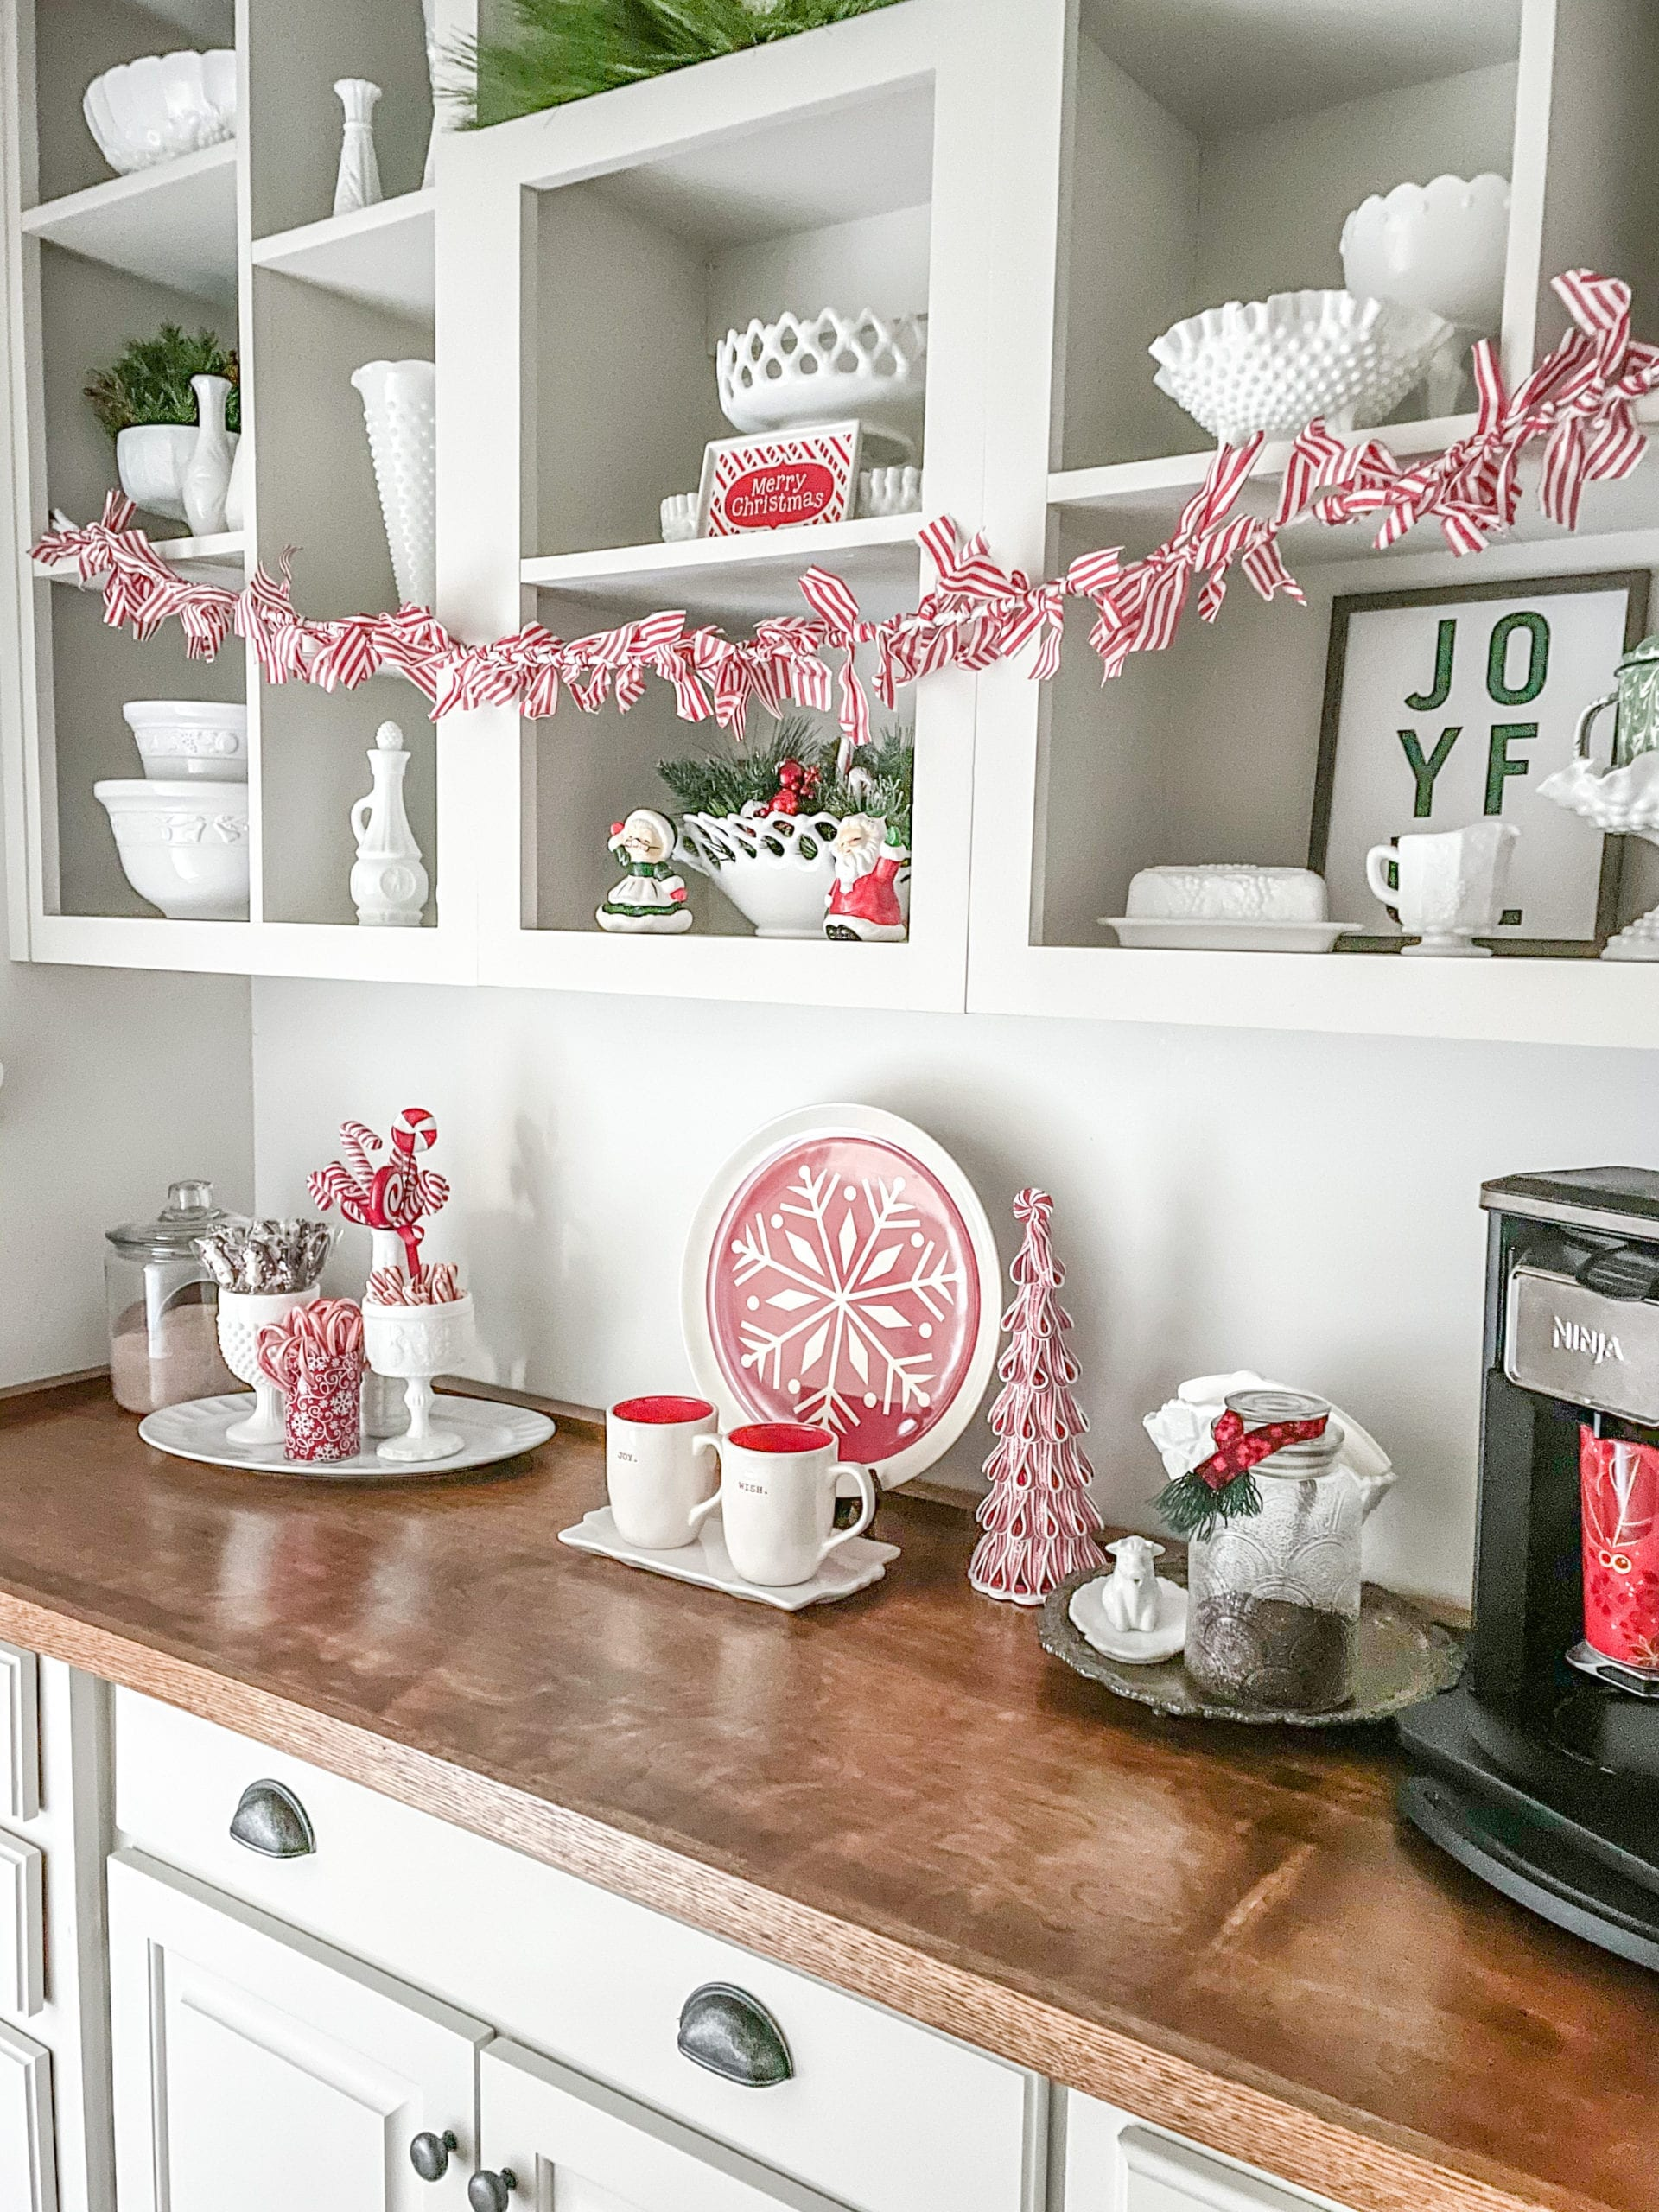 A Coffee and Hot Cocoa Bar